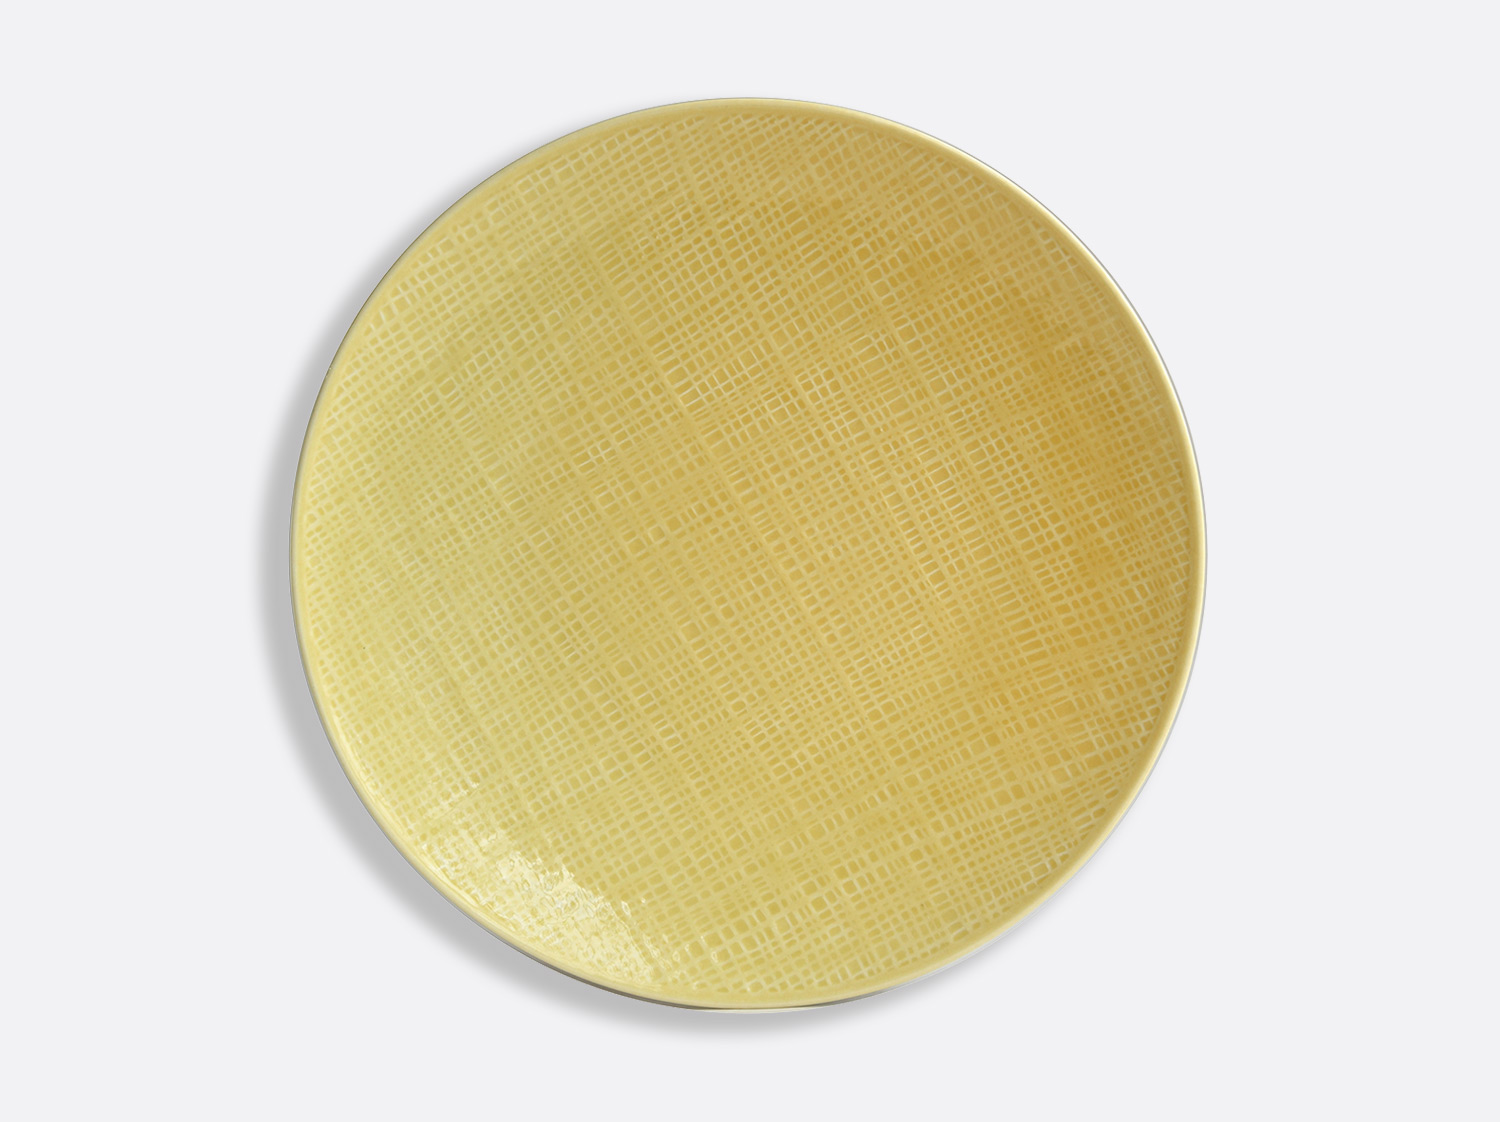 Assiette Jaune Paille 29,5 cm en porcelaine de la collection ORGANZA JAUNE PAILLE Bernardaud